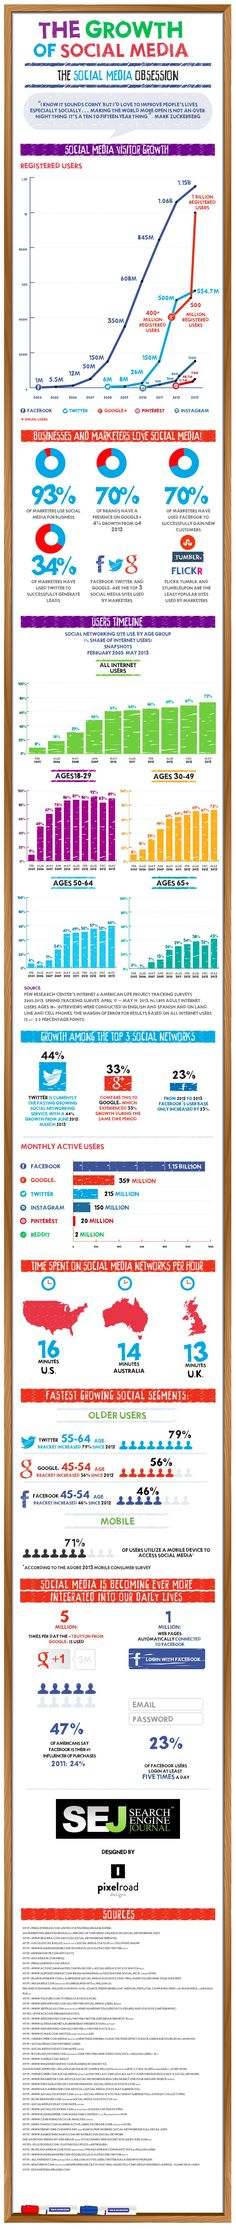 Facebook, Twitter, Google+, Pinterest, Instagram – The Growth Of Social Media [INFOGRAPHIC]